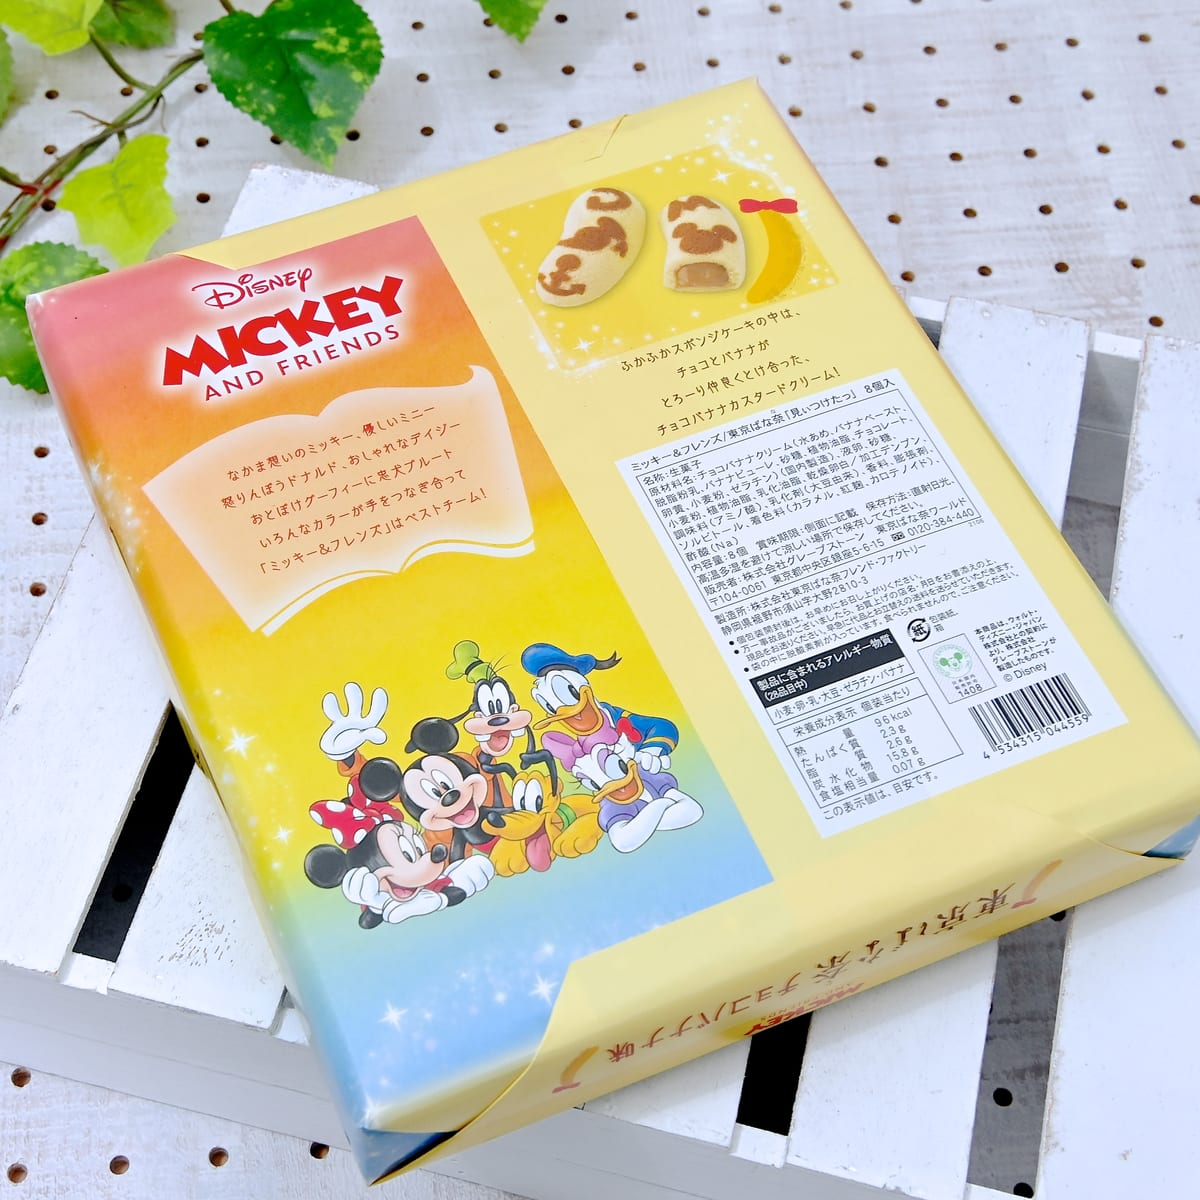 「Disney SWEETS COLLECTION by 東京ばな奈」パッケージ裏